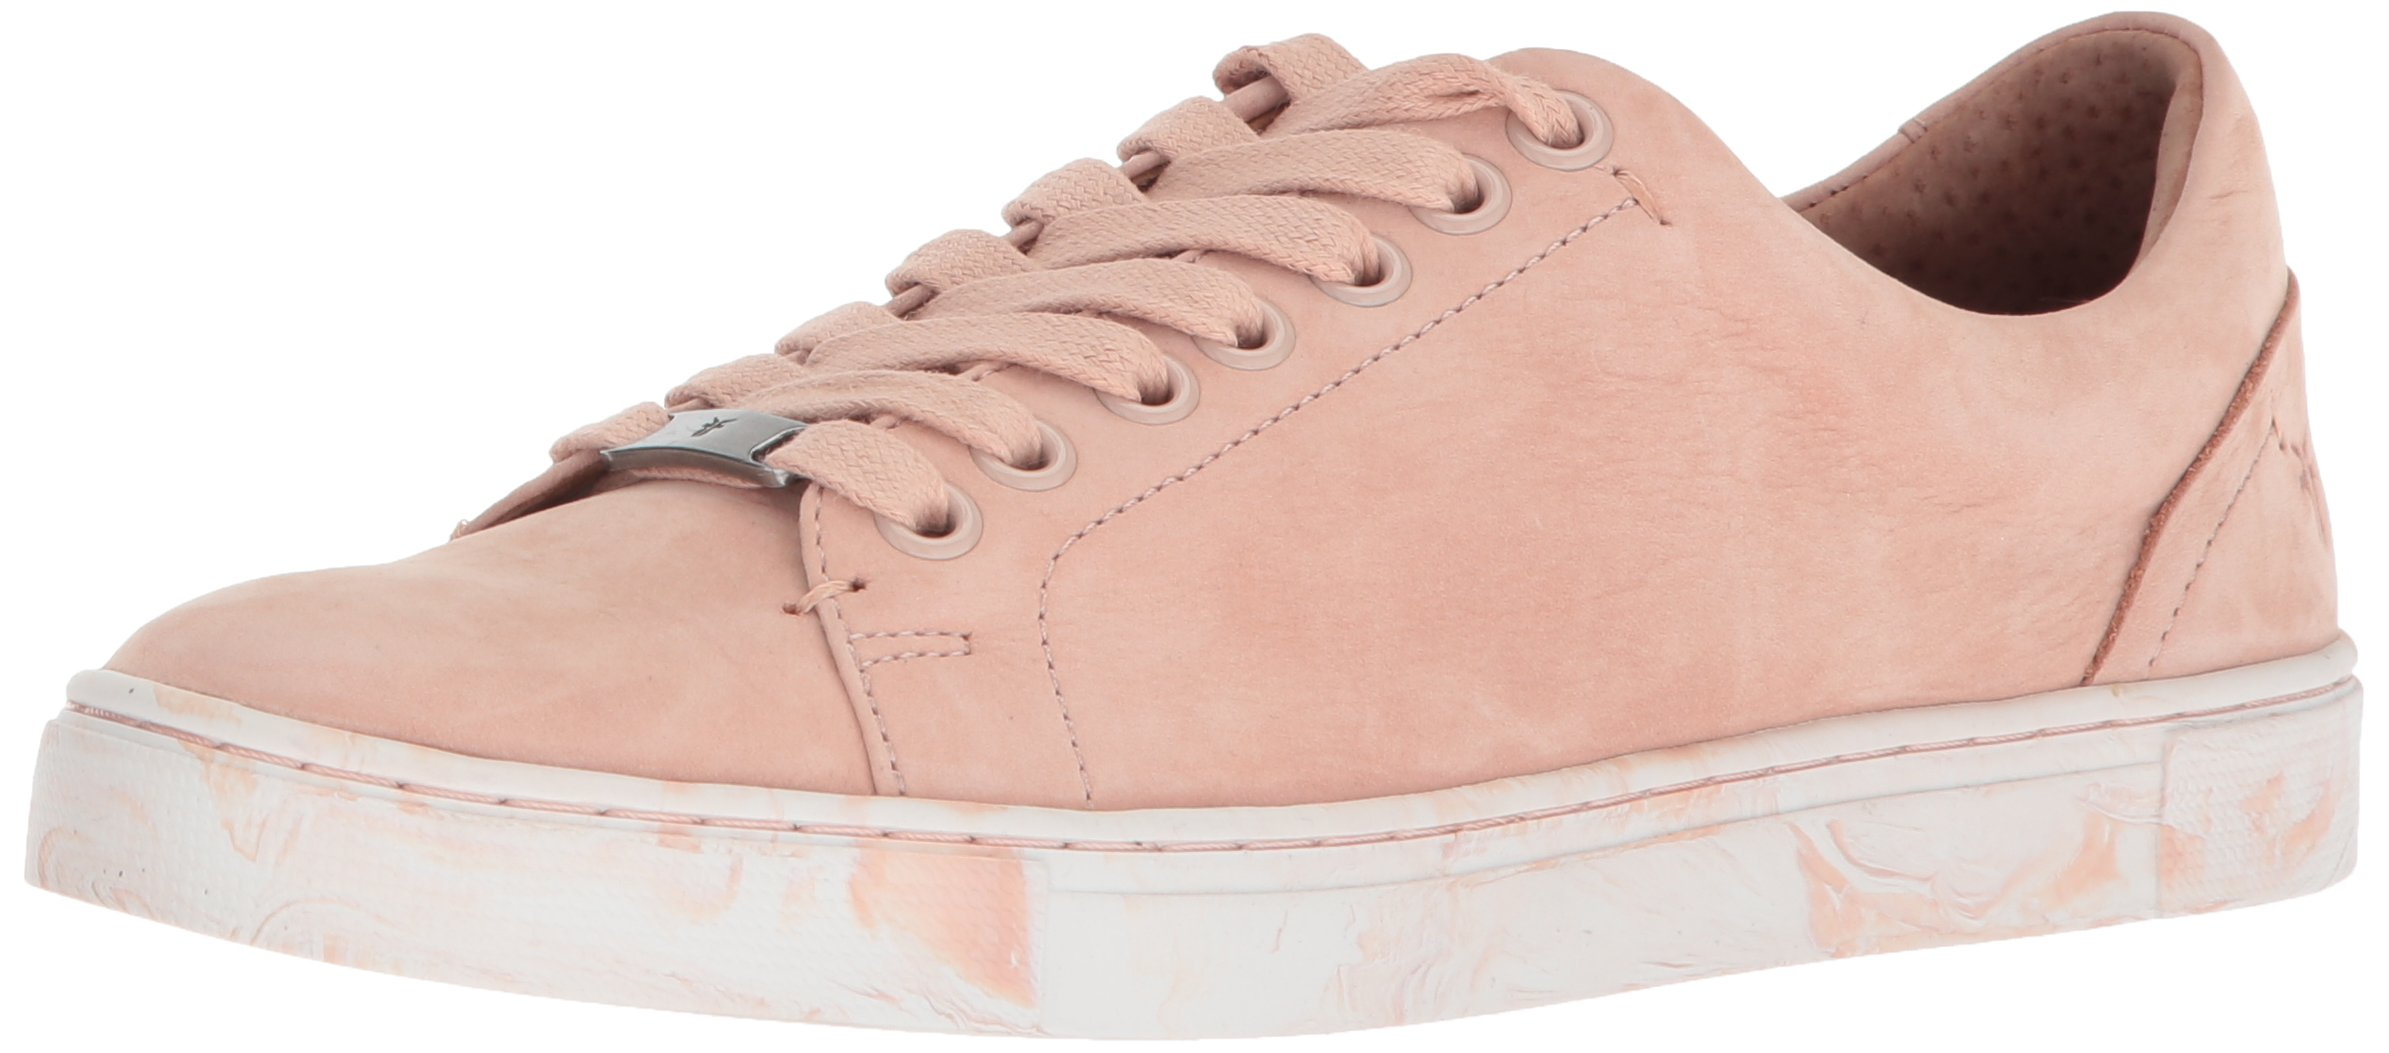 FRYE Women's Ivy Low LACE Sneaker Blush Marbled Outsole 8.5 M US